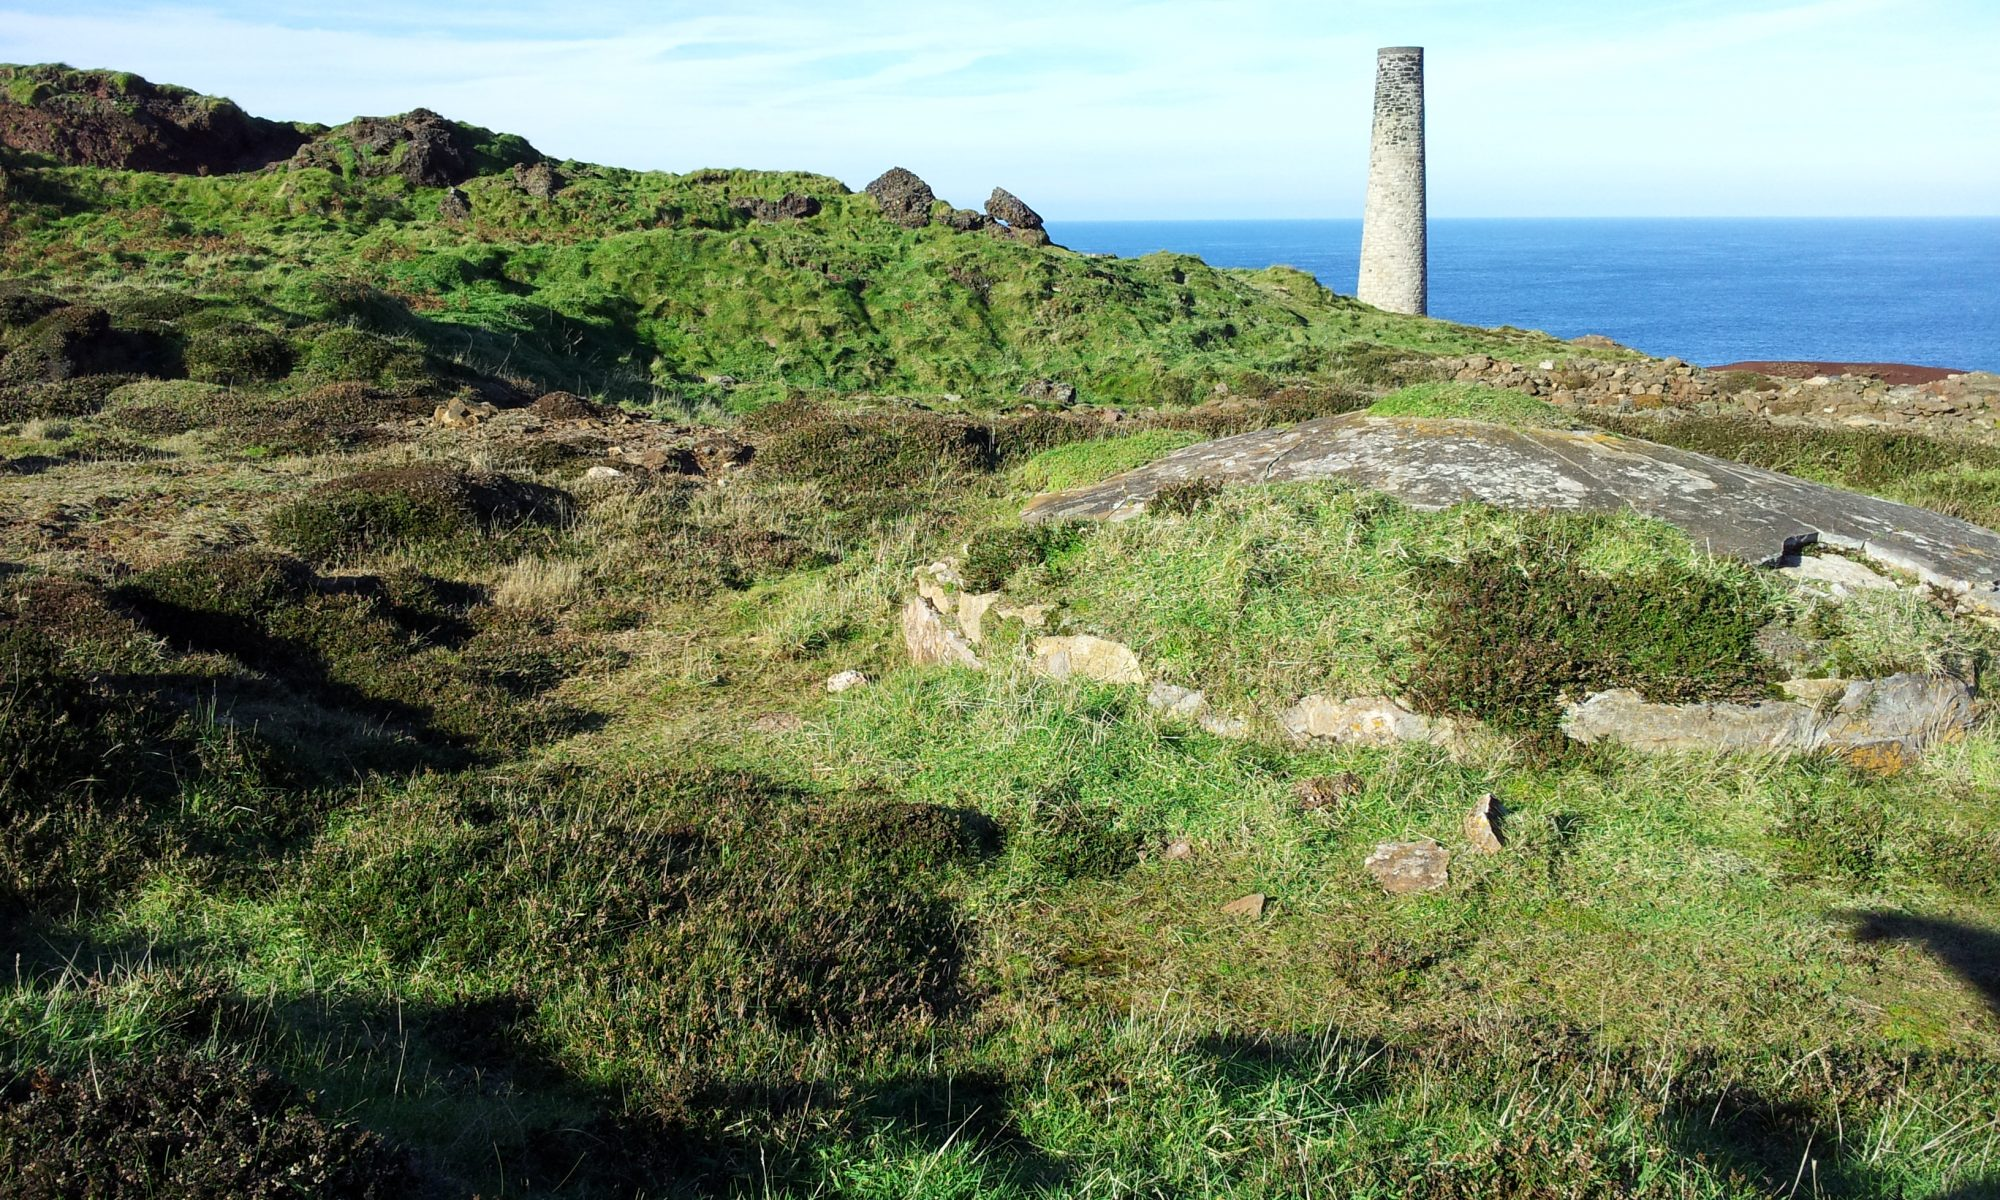 Levant Mine, part of the Cornwall and West Devon Mining Landscape, designated in 2006.